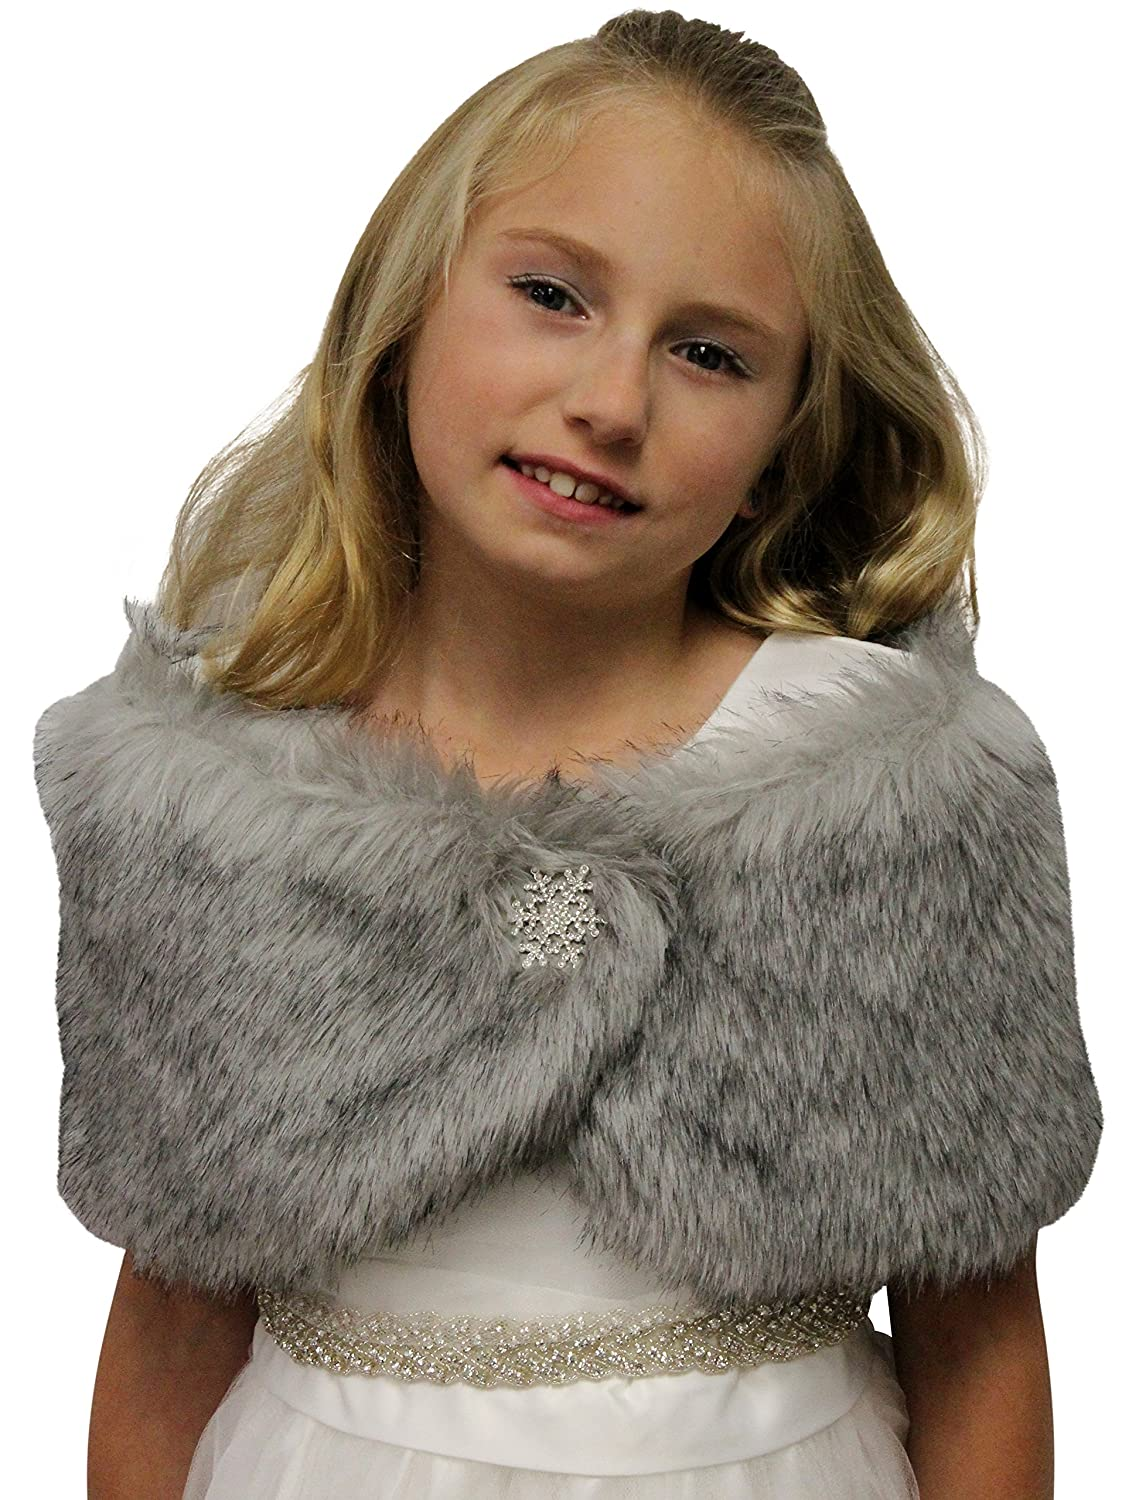 Faux Fur Wedding Wrap Flower Girl Grey Chinchilla Size Small Tion Bridal 306NF-FG-GREY-S